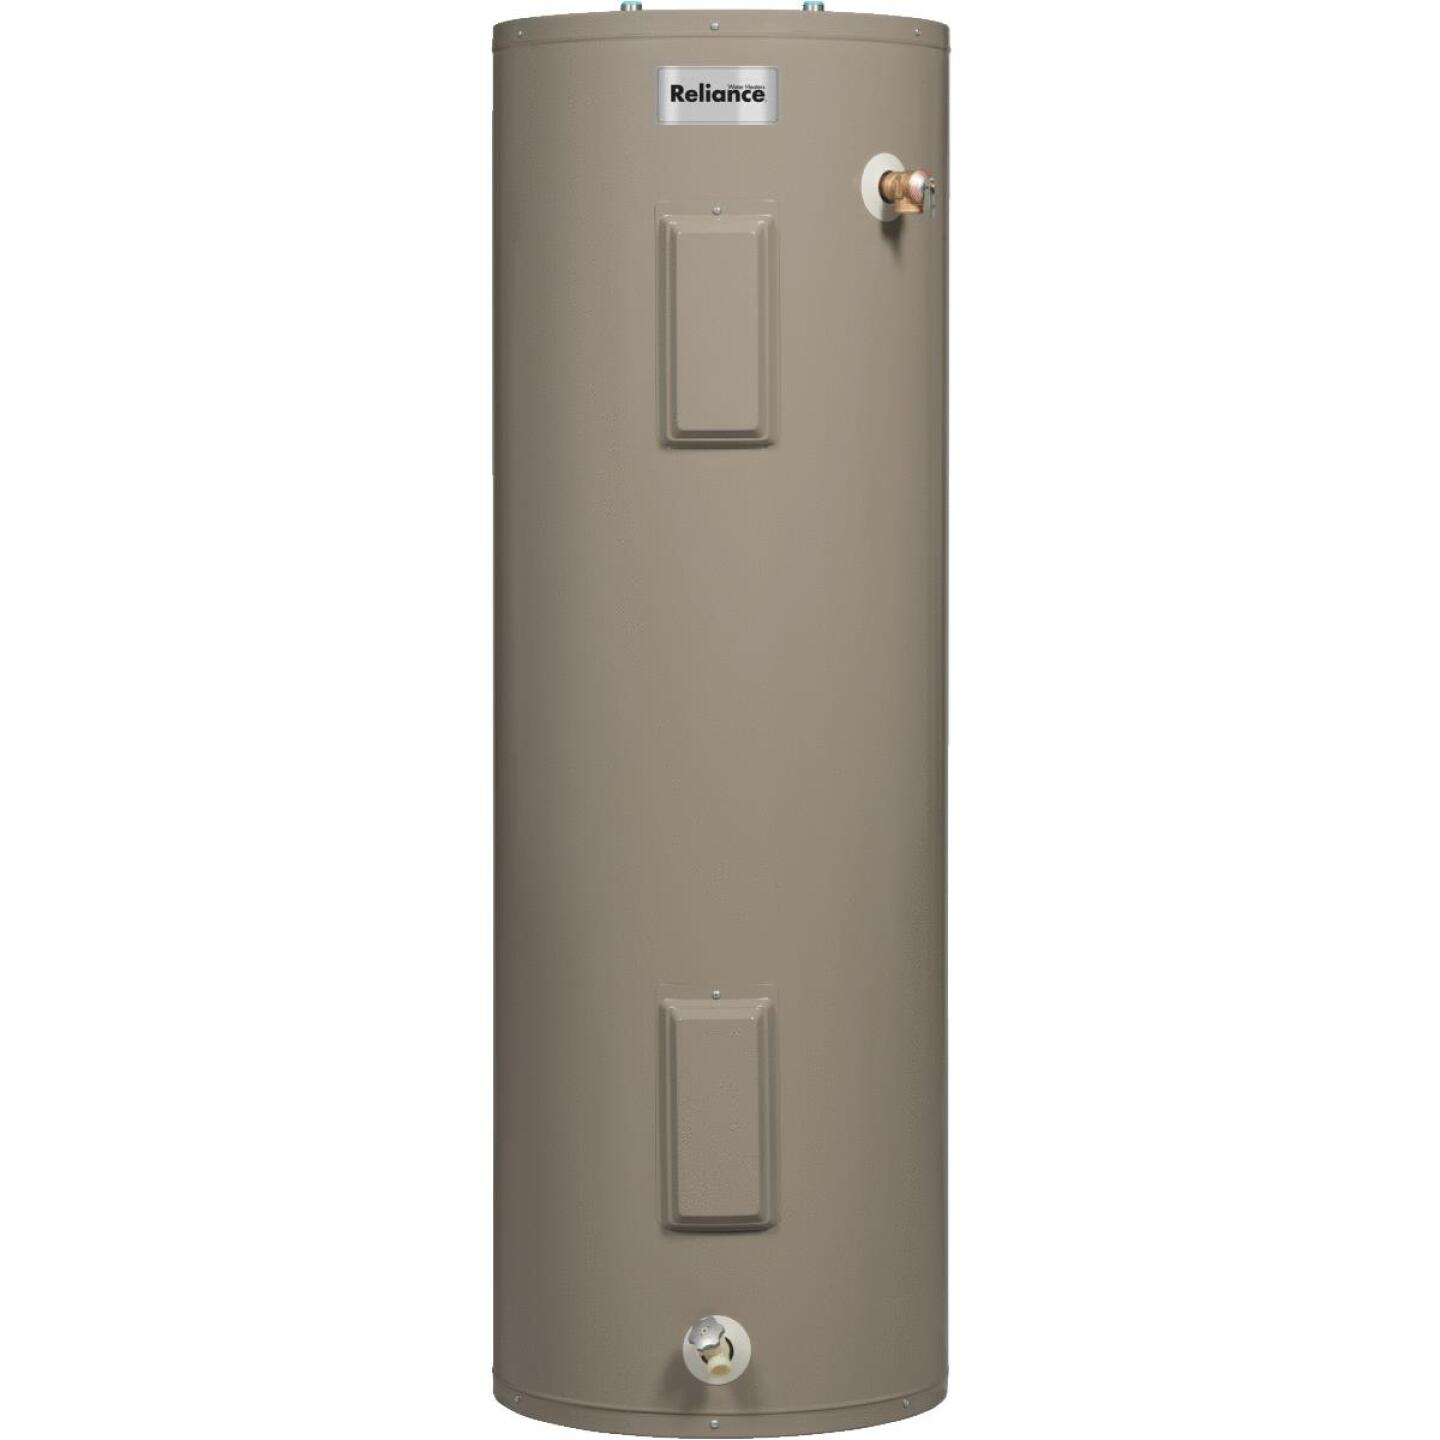 Reliance 40 Gal. Tall 6yr 4500/4500W Elements Electric Water Heater Image 1